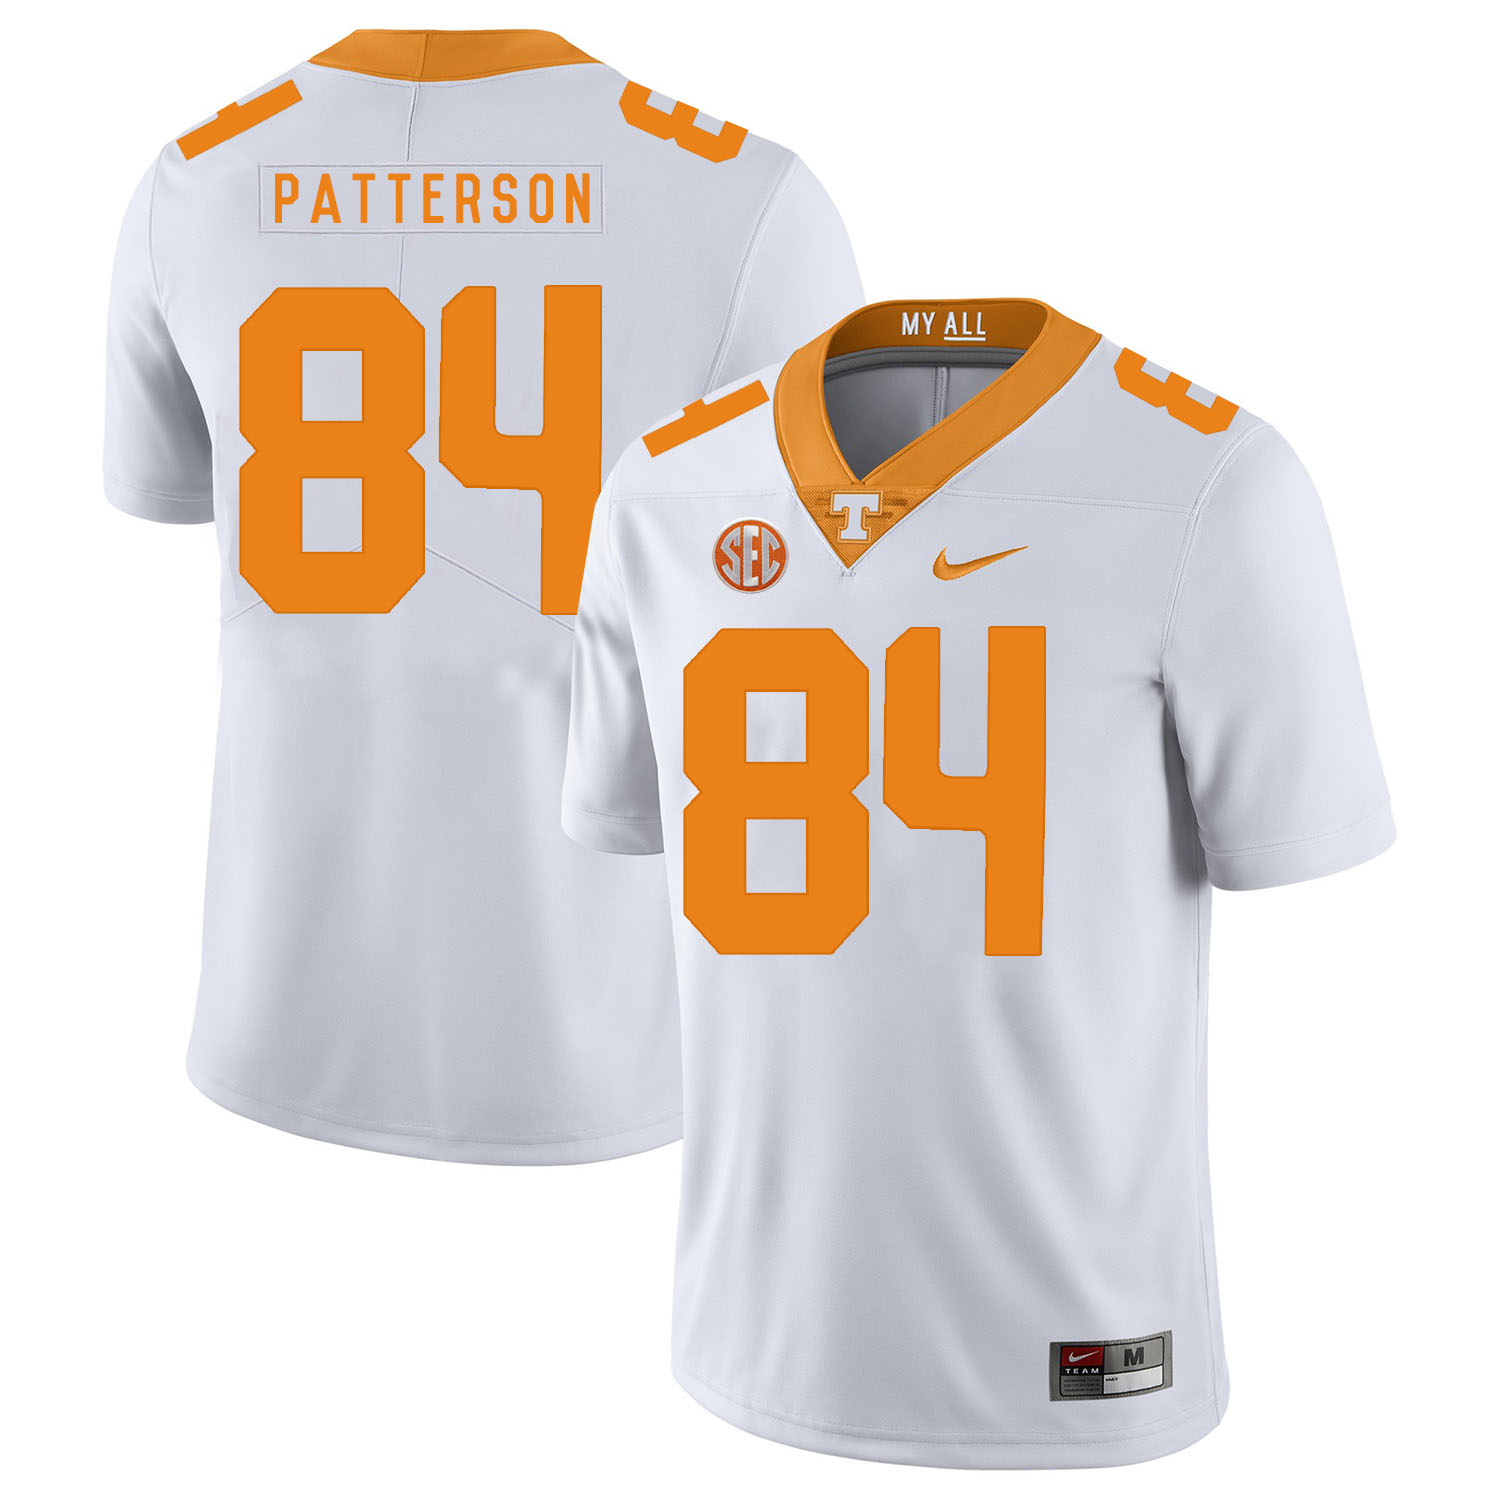 Tennessee Volunteers 84 Cordarrelle Patterson White Nike College Football Jersey